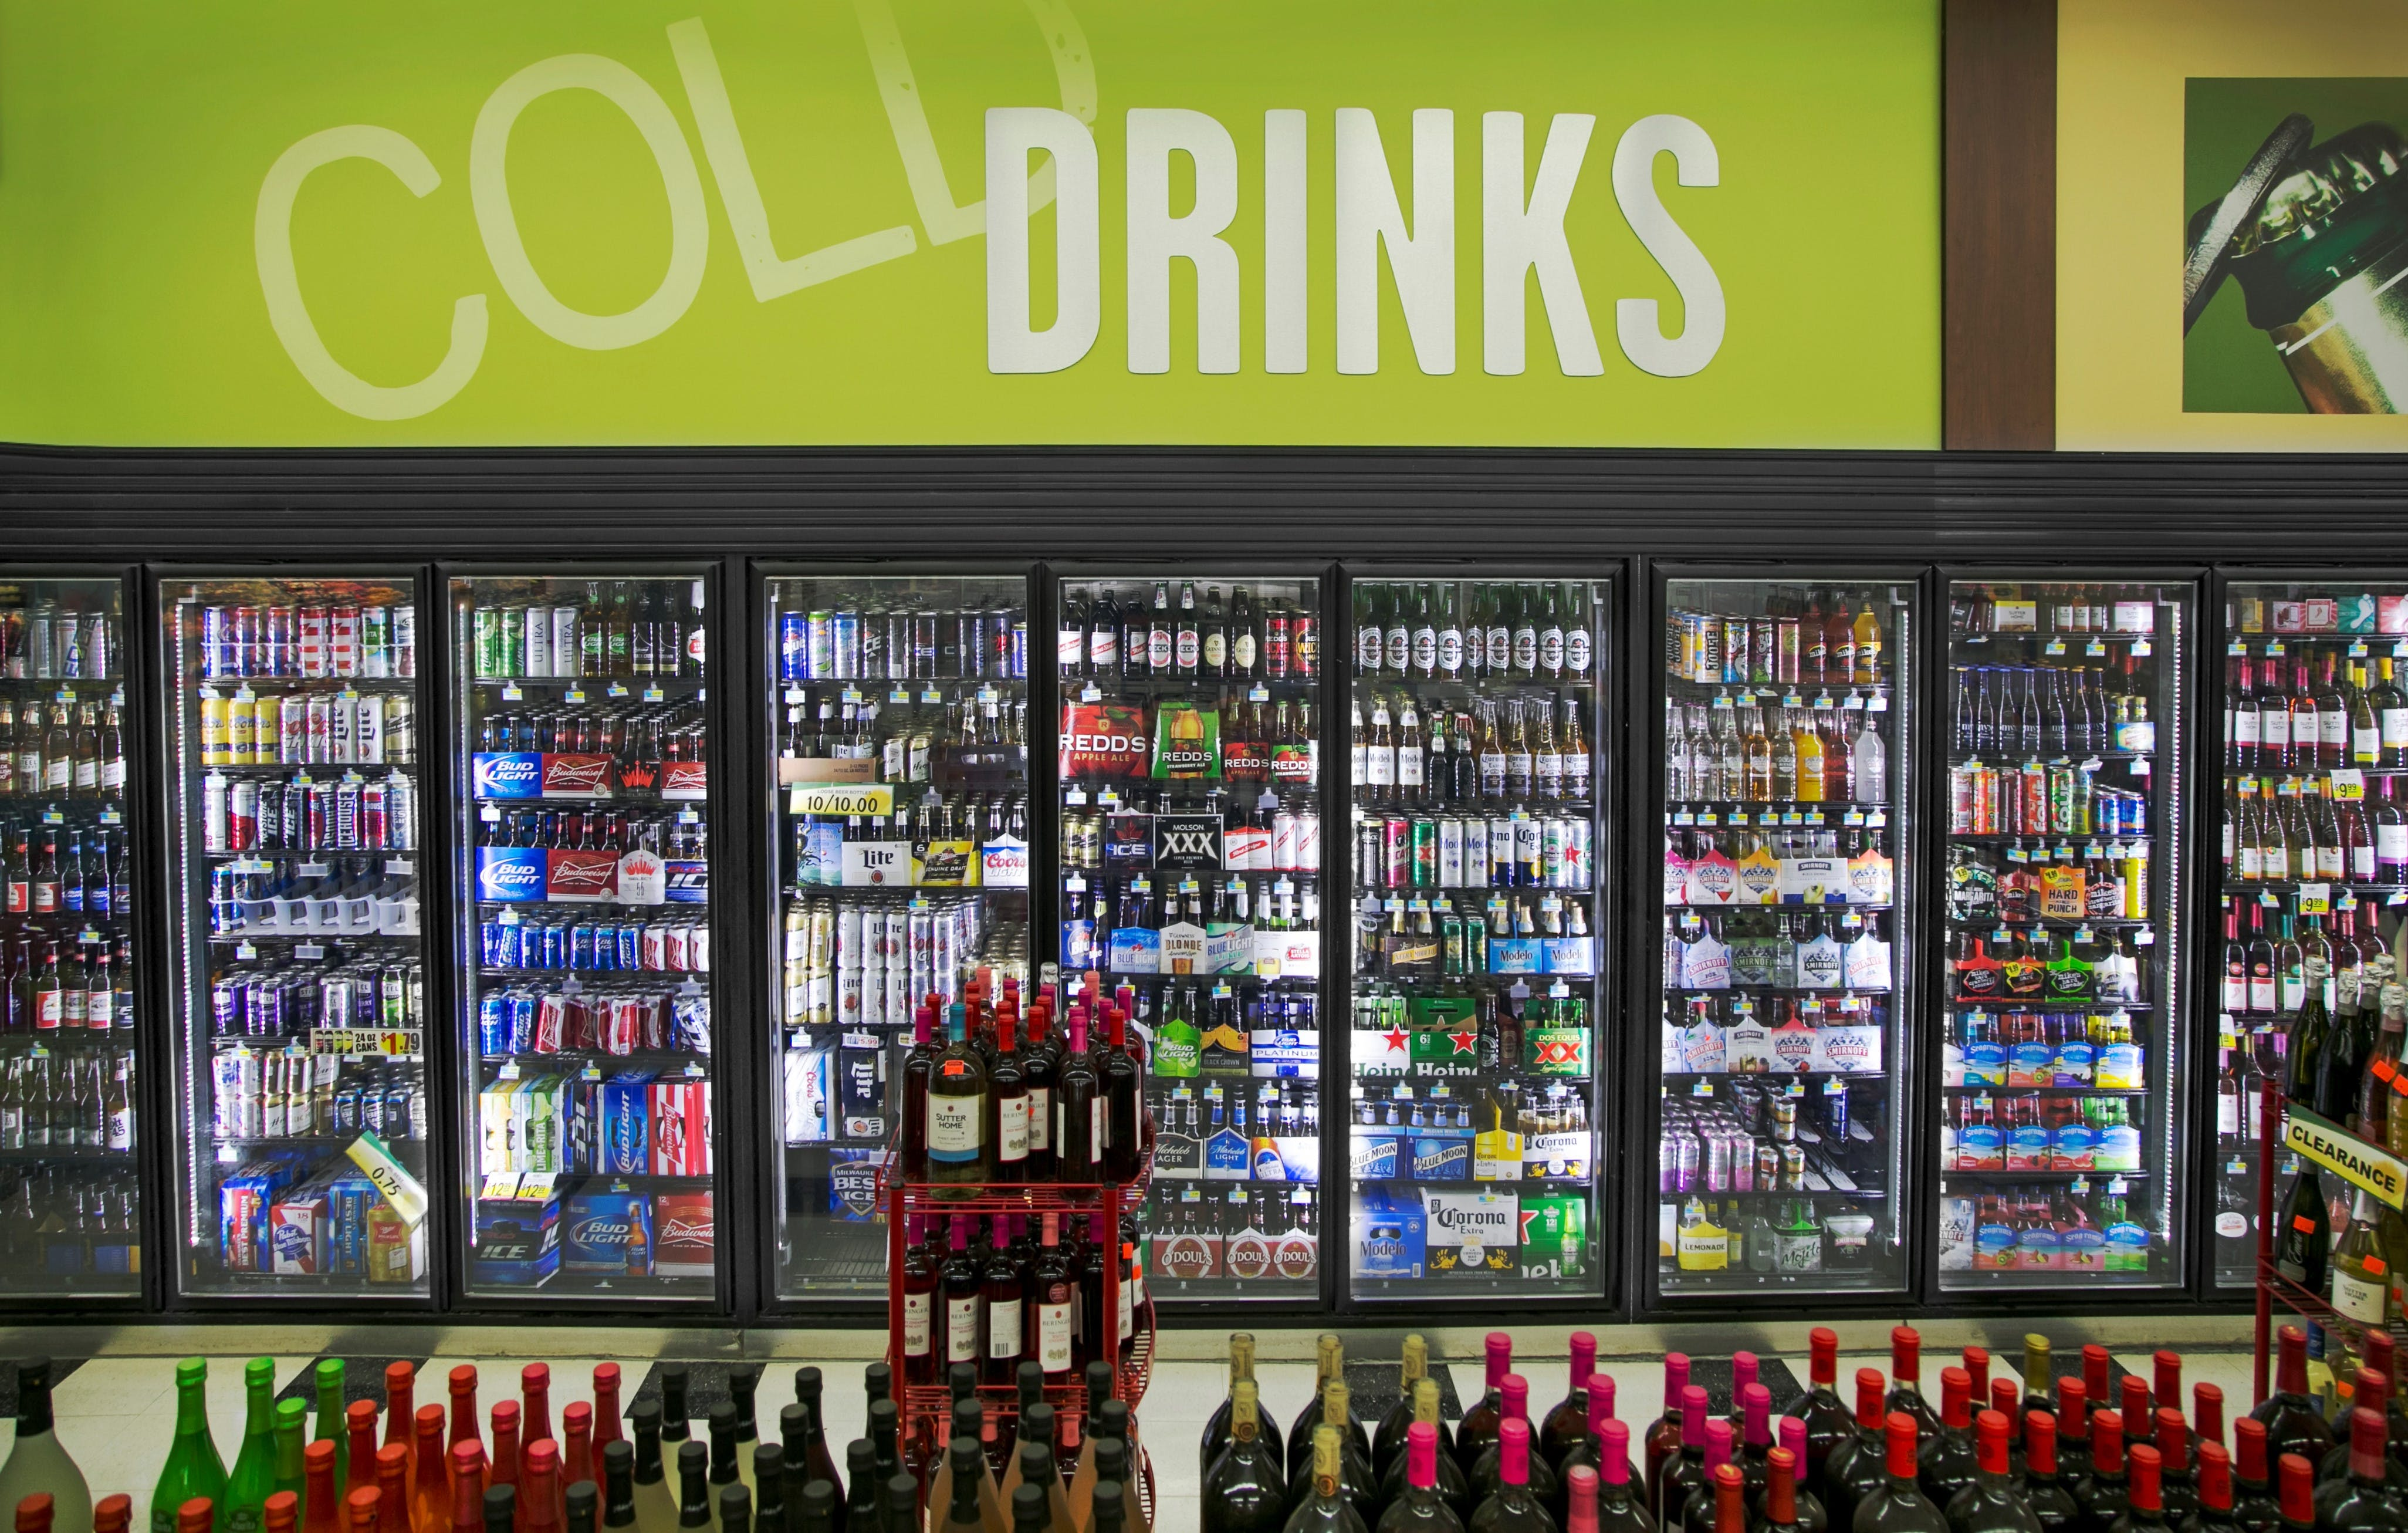 Walk in cooler with 8 display doors, Box size 8' x 21.5' x 8.2' SAMS-V Walk in cooler sold by Easy Refrigeration Company